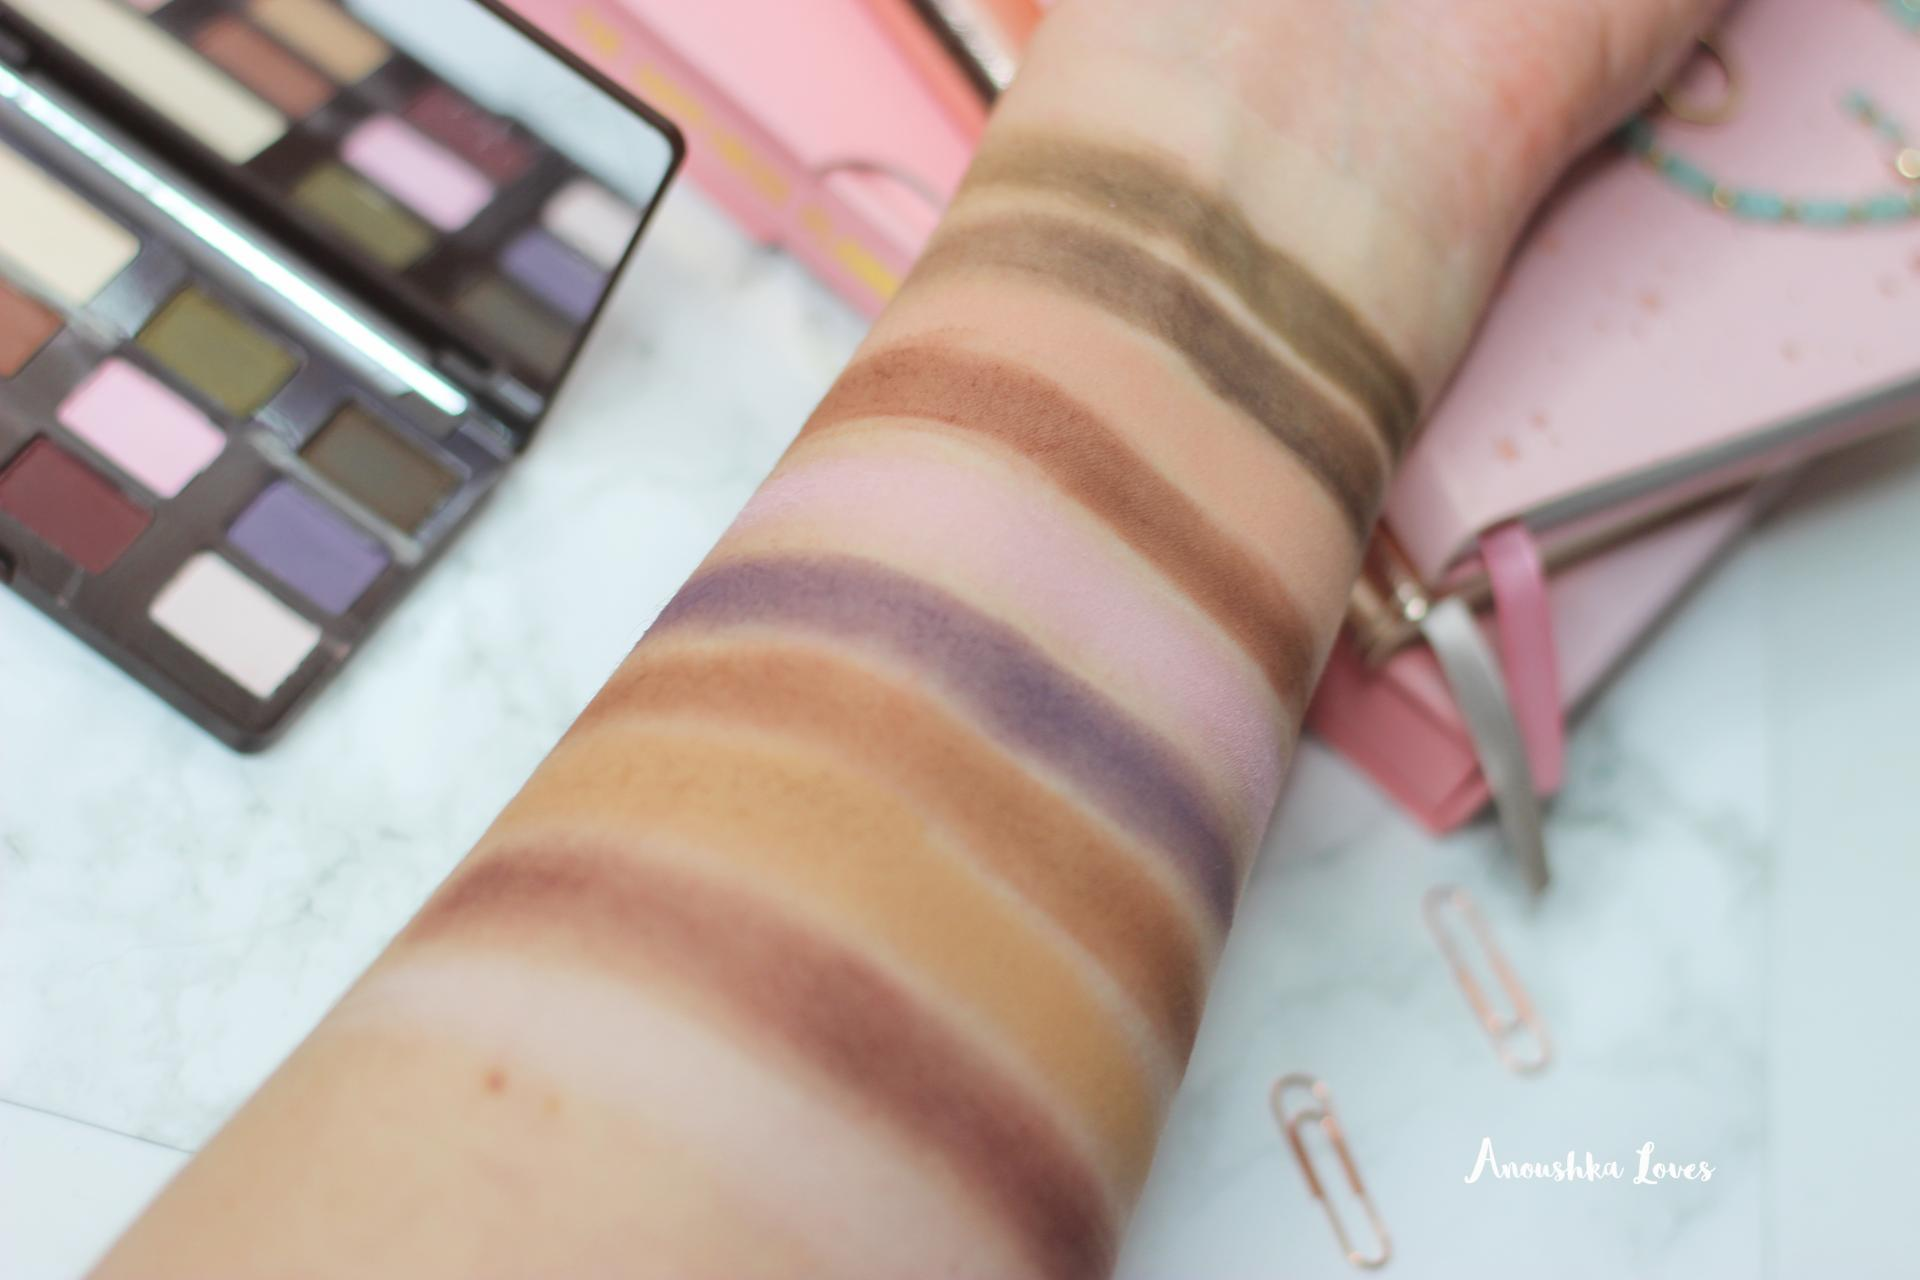 Too Faced Matte Chocolate Chip palette swatches on arm